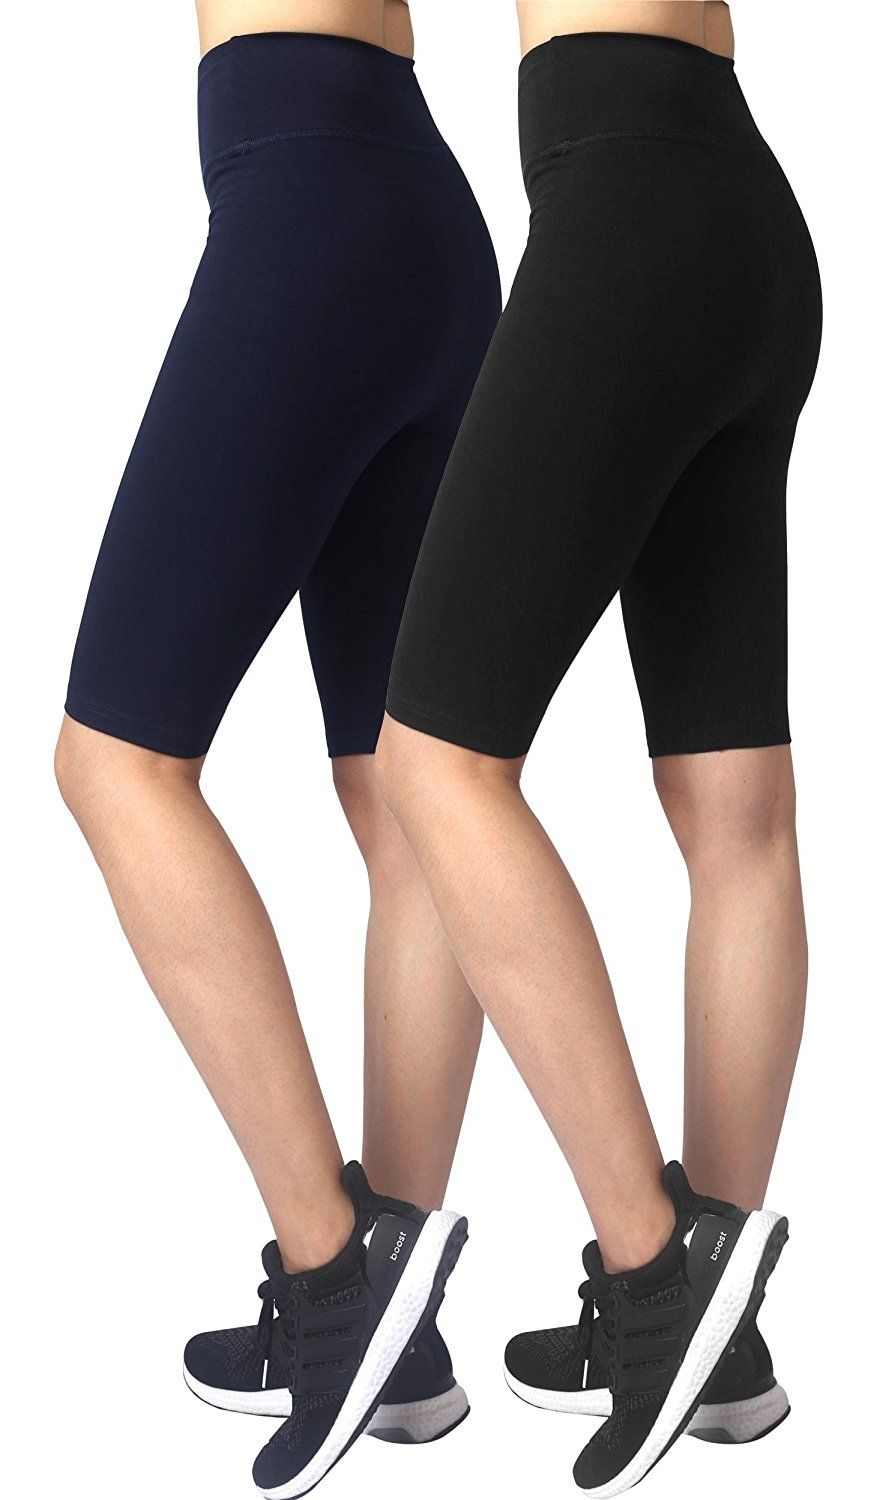 Shop For Cheap Womens Cotton Lycra Cycling Shorts Gym Dance Sports Active Casual Outdoor Wear Numerous In Variety Shorts